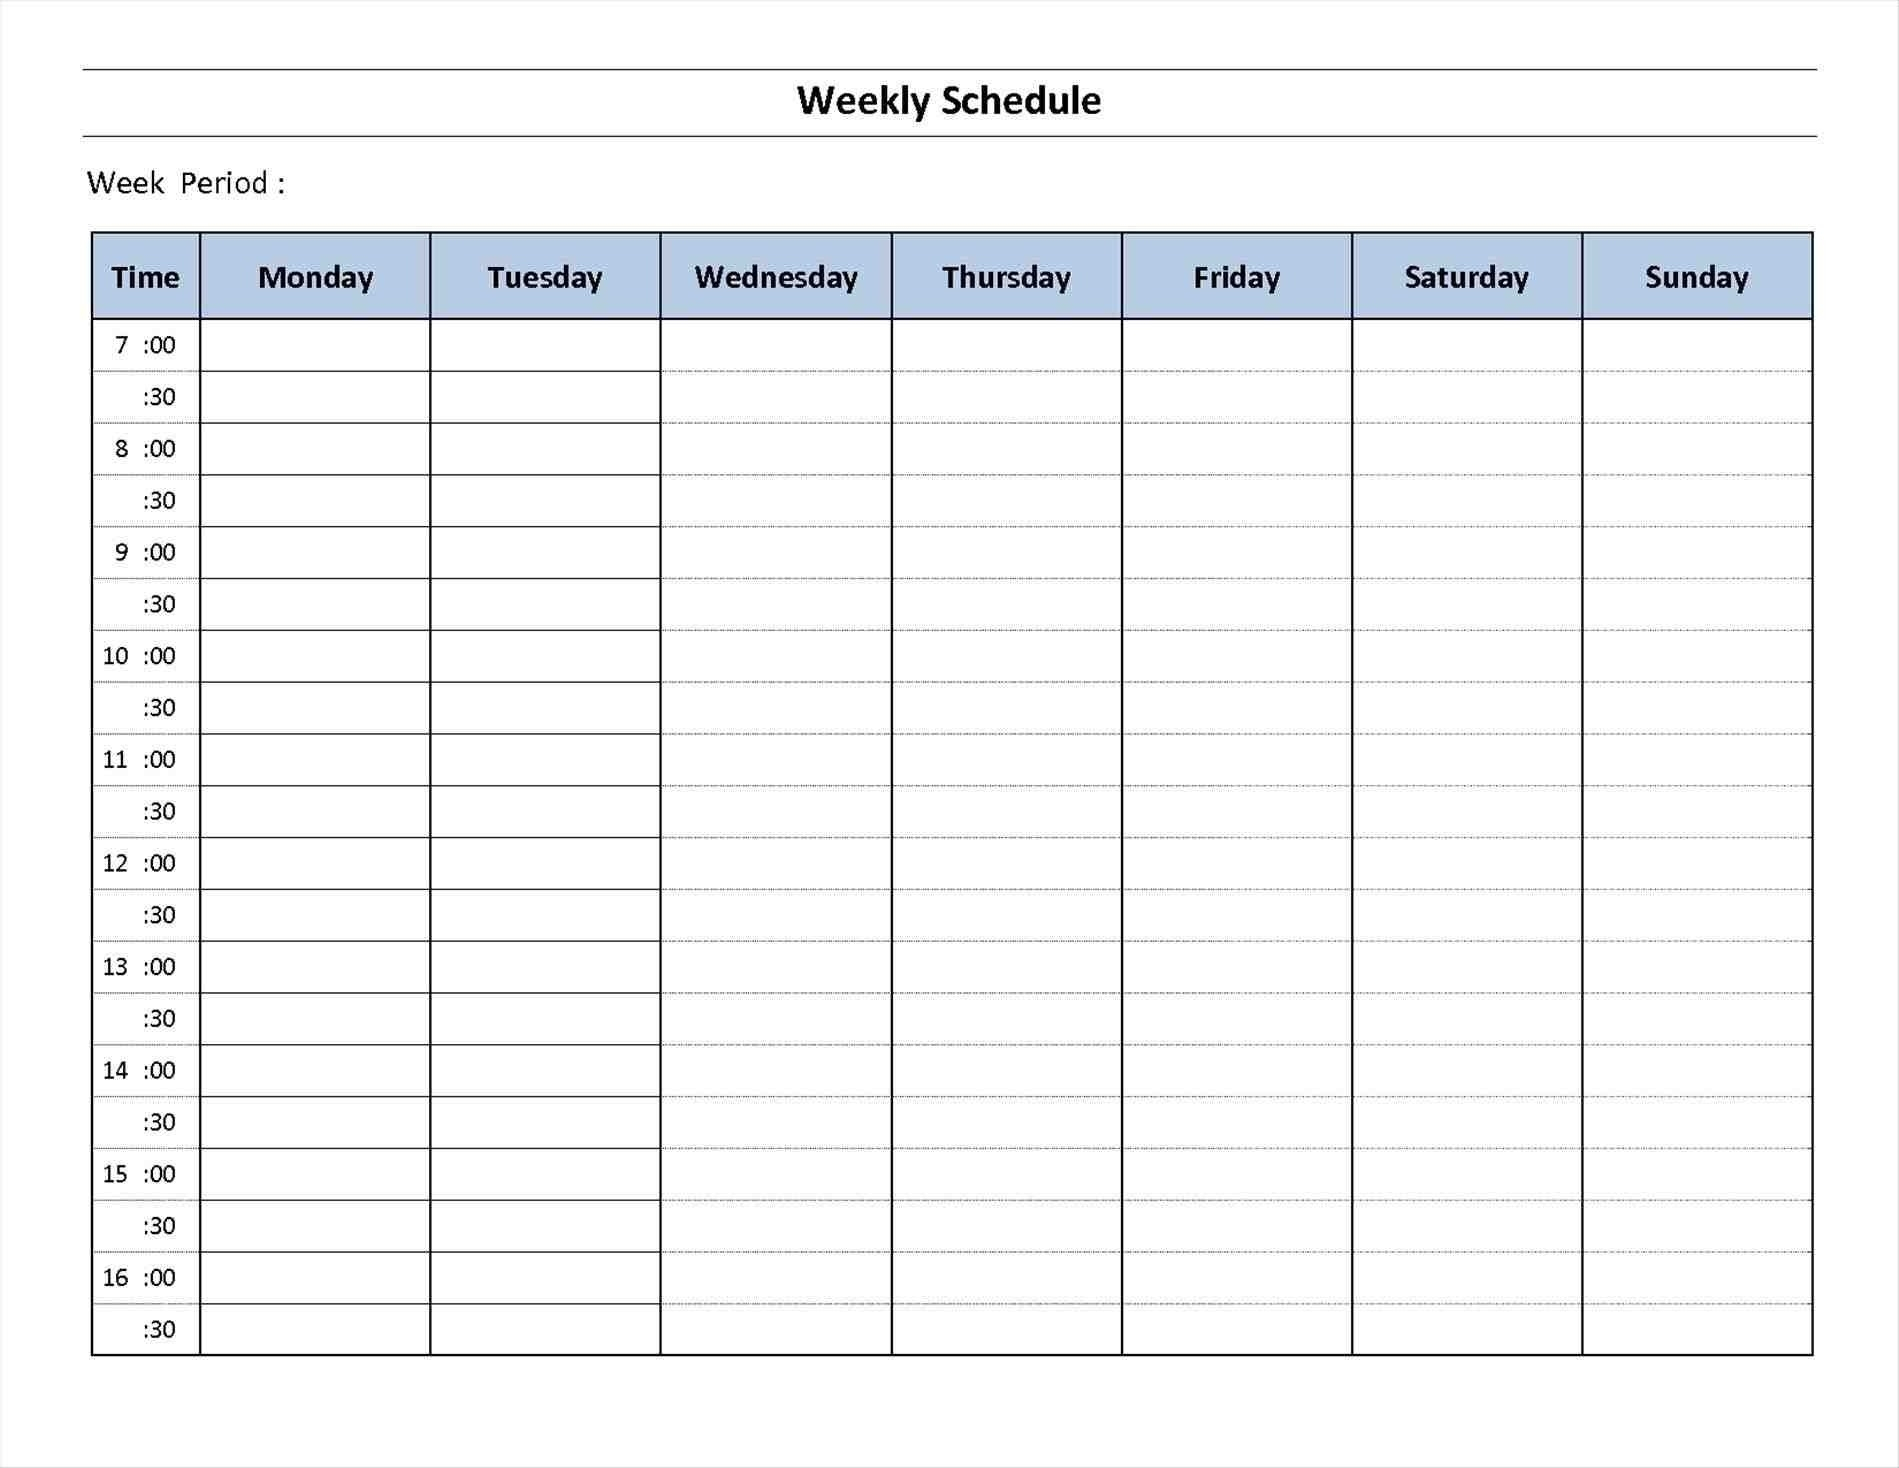 Schedule Template Day Week Calendar Printable Blank | Smorad throughout Free Printable Template For Day Of The Week Schedule